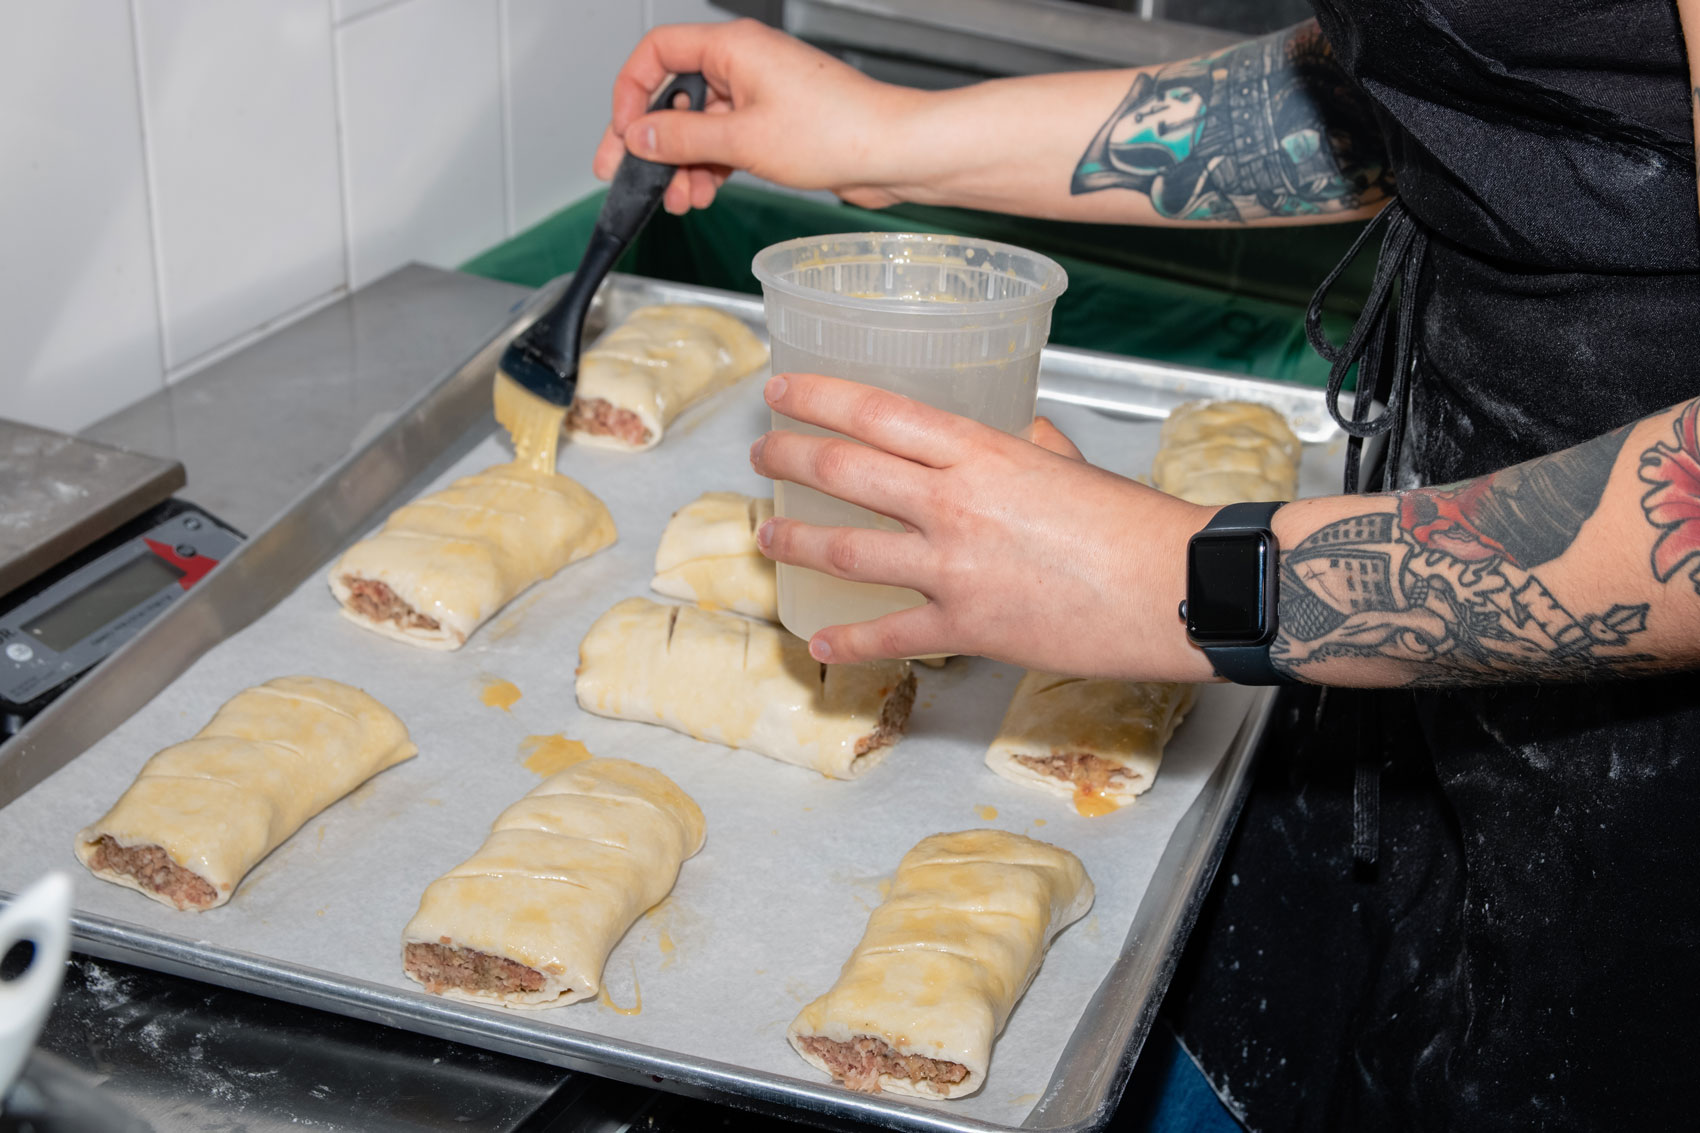 Small handheld pies being buttered.